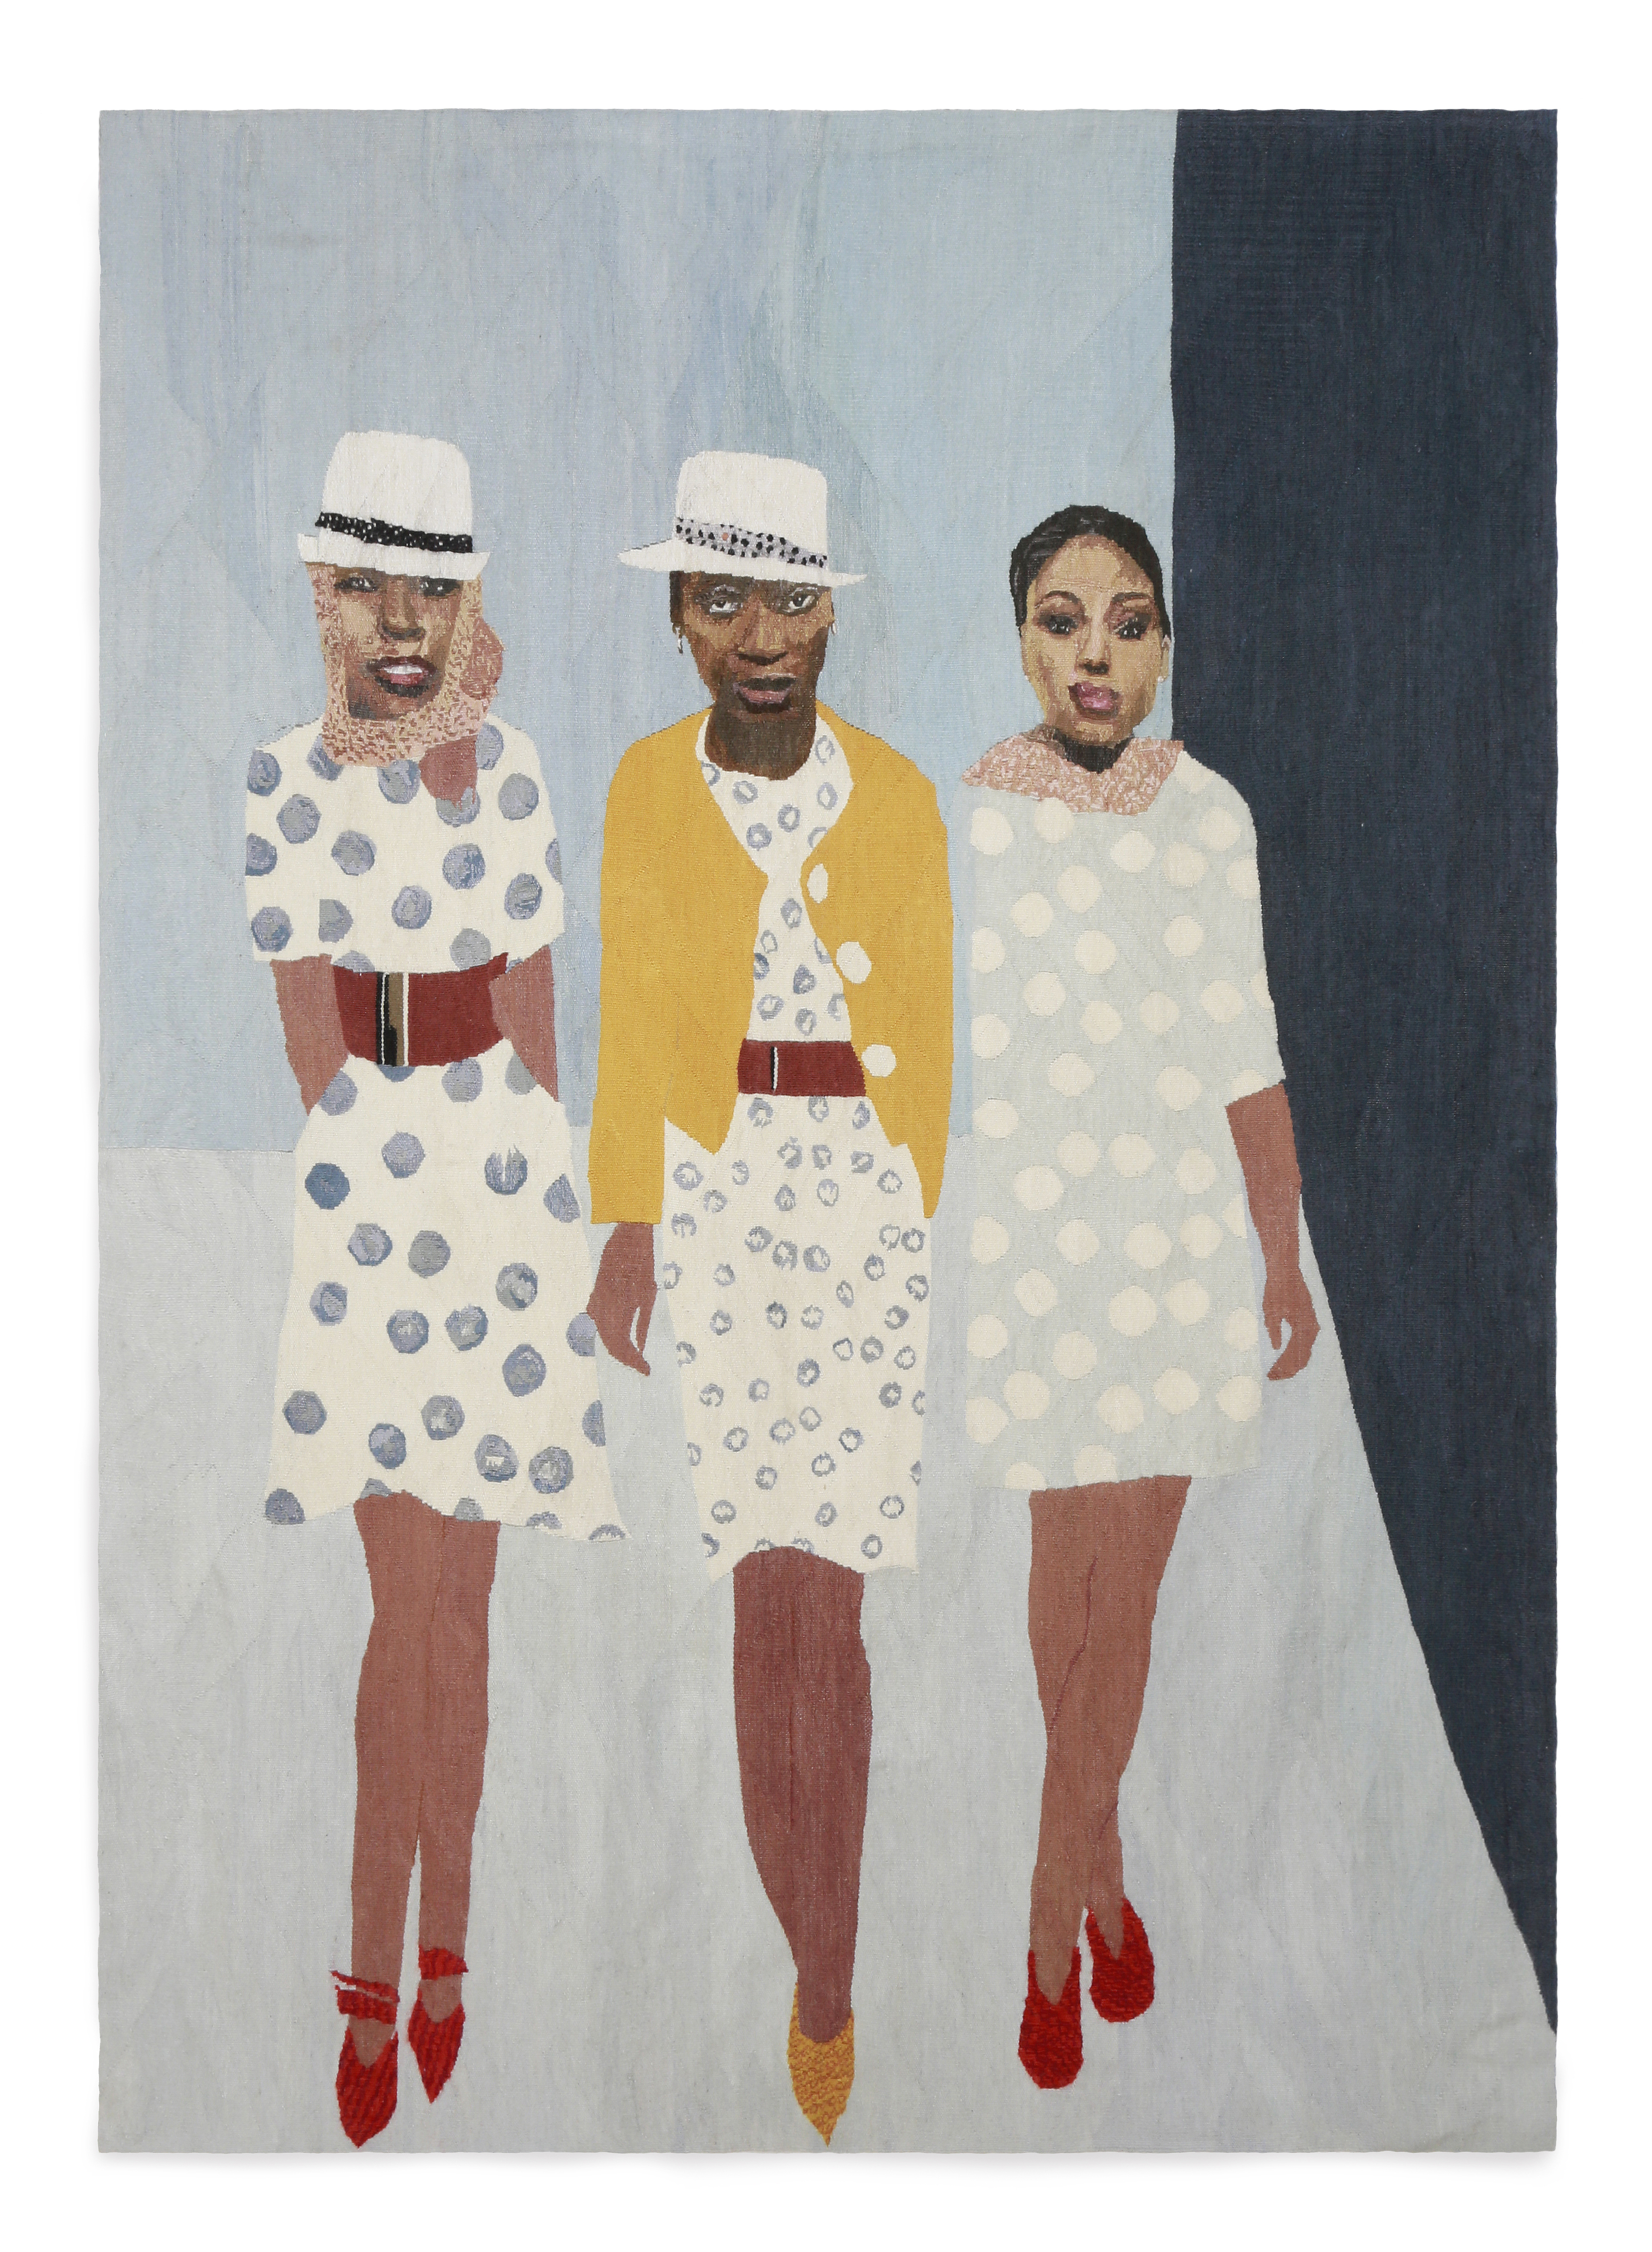 Models Size: 2.5m x 1.9m First Woven: 2012/13 Edition of 3